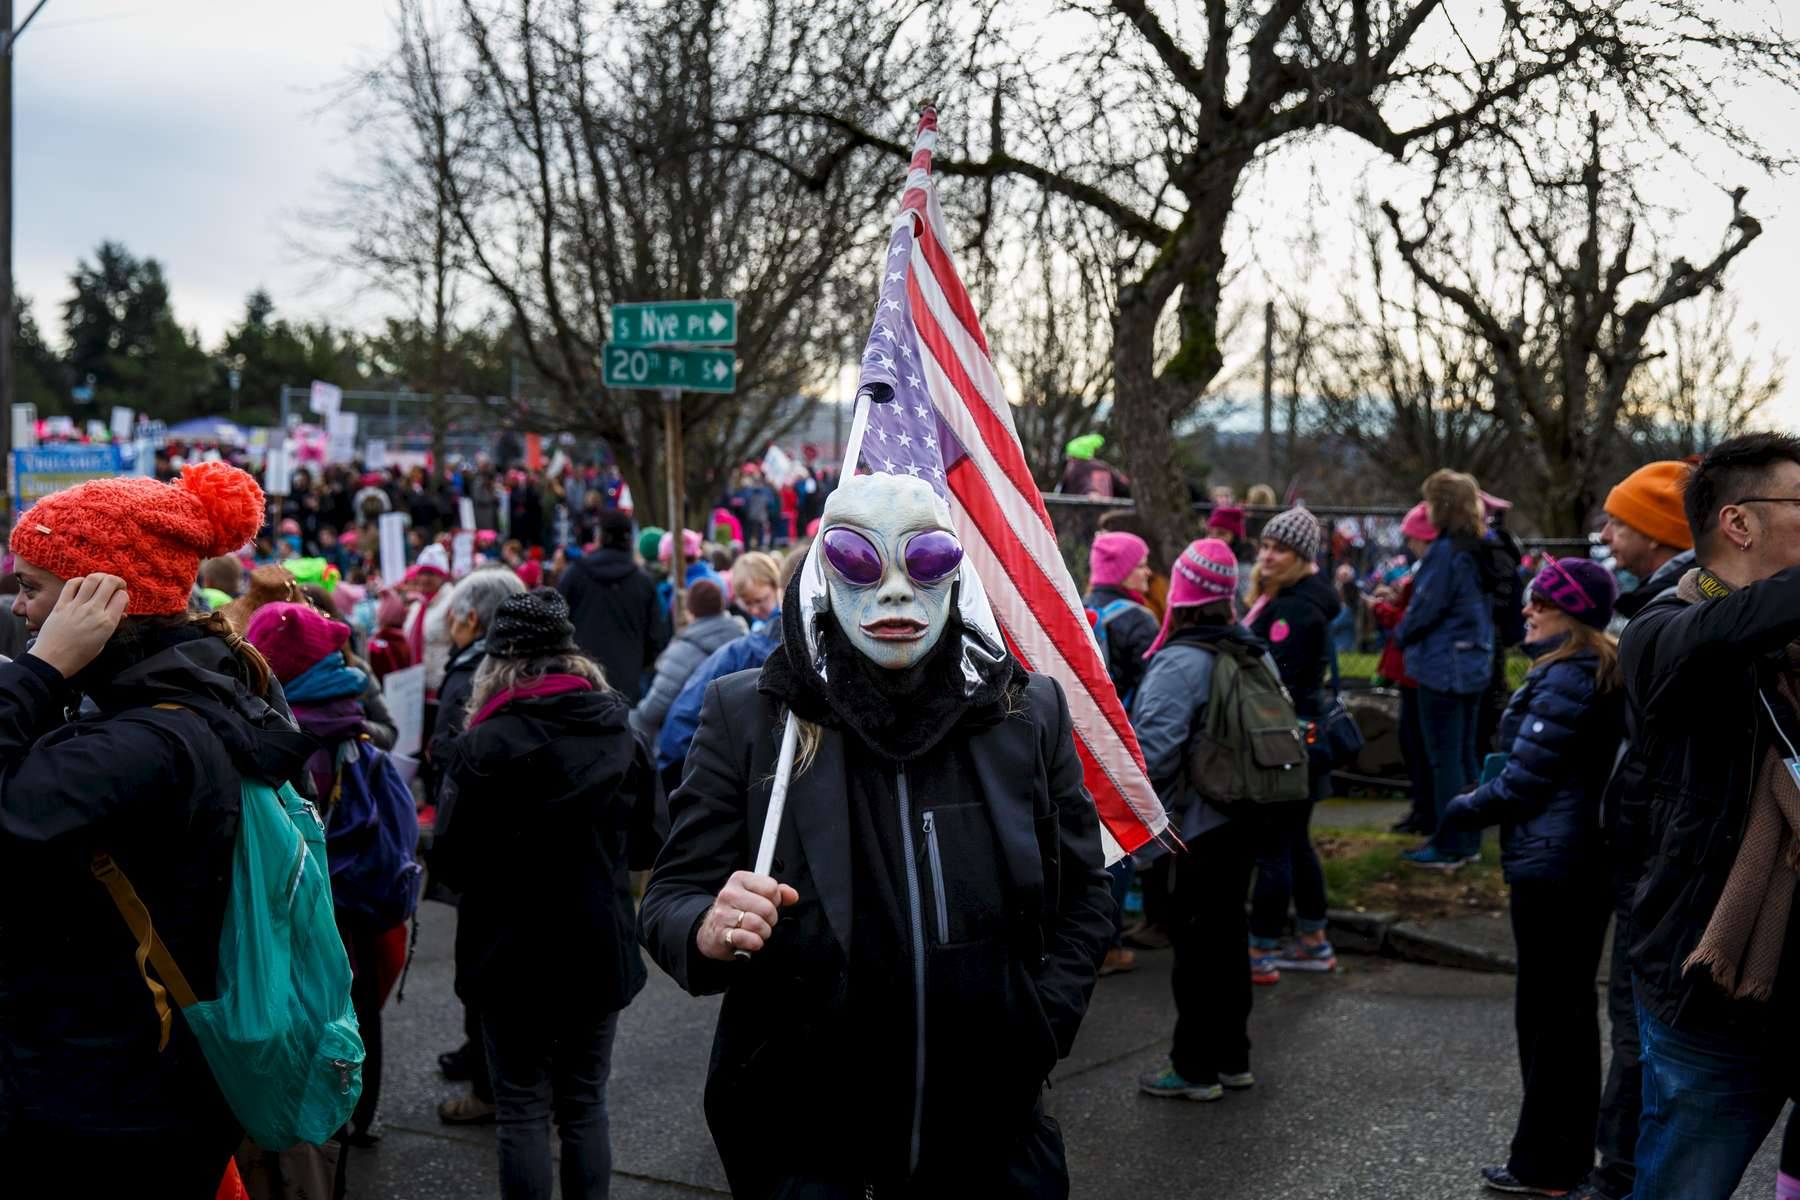 Seattle, WA., January 21, 2017: Thousands participate in the Women's March in Seattle to protest against Donald Trump. Photograph by Evan McGlinn for The New York Times.